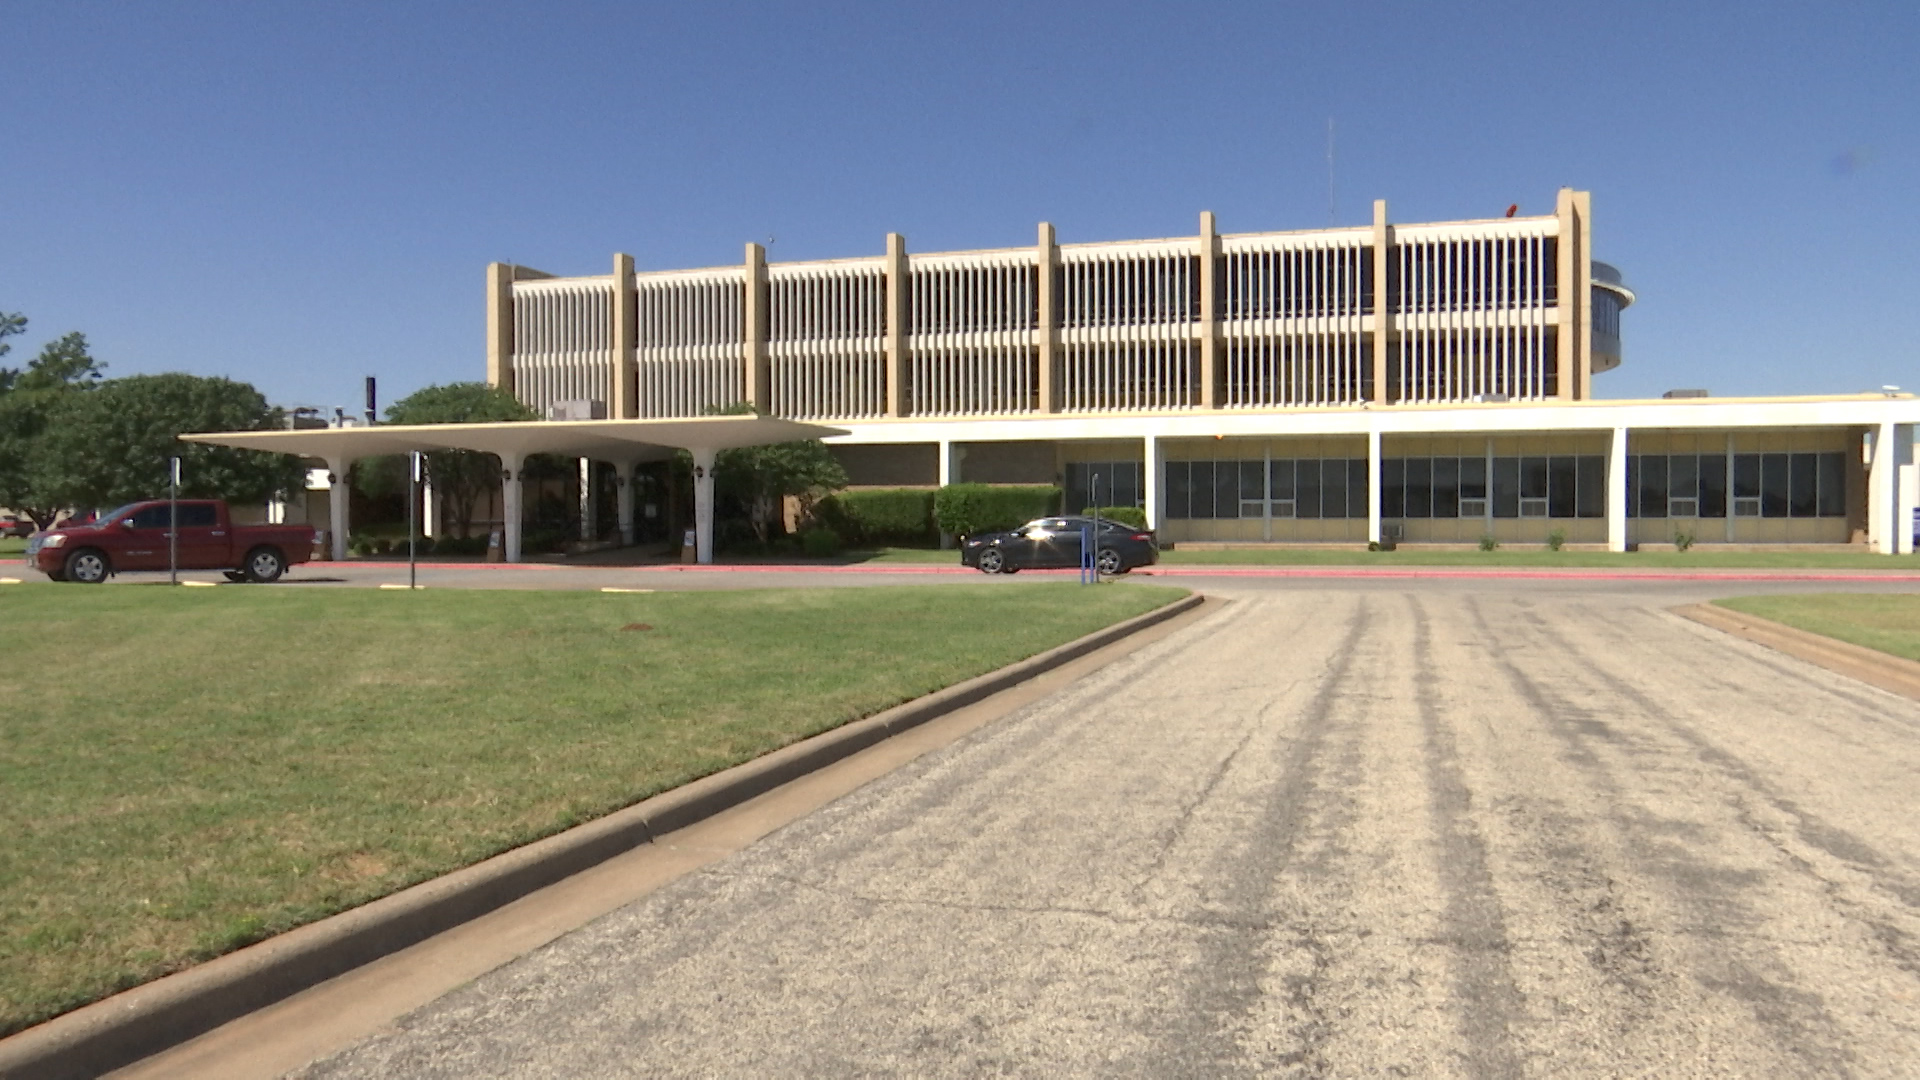 Wilbarger General Hospital is now headed by a man who said he loves working with hospitals in rural communities to make a difference.